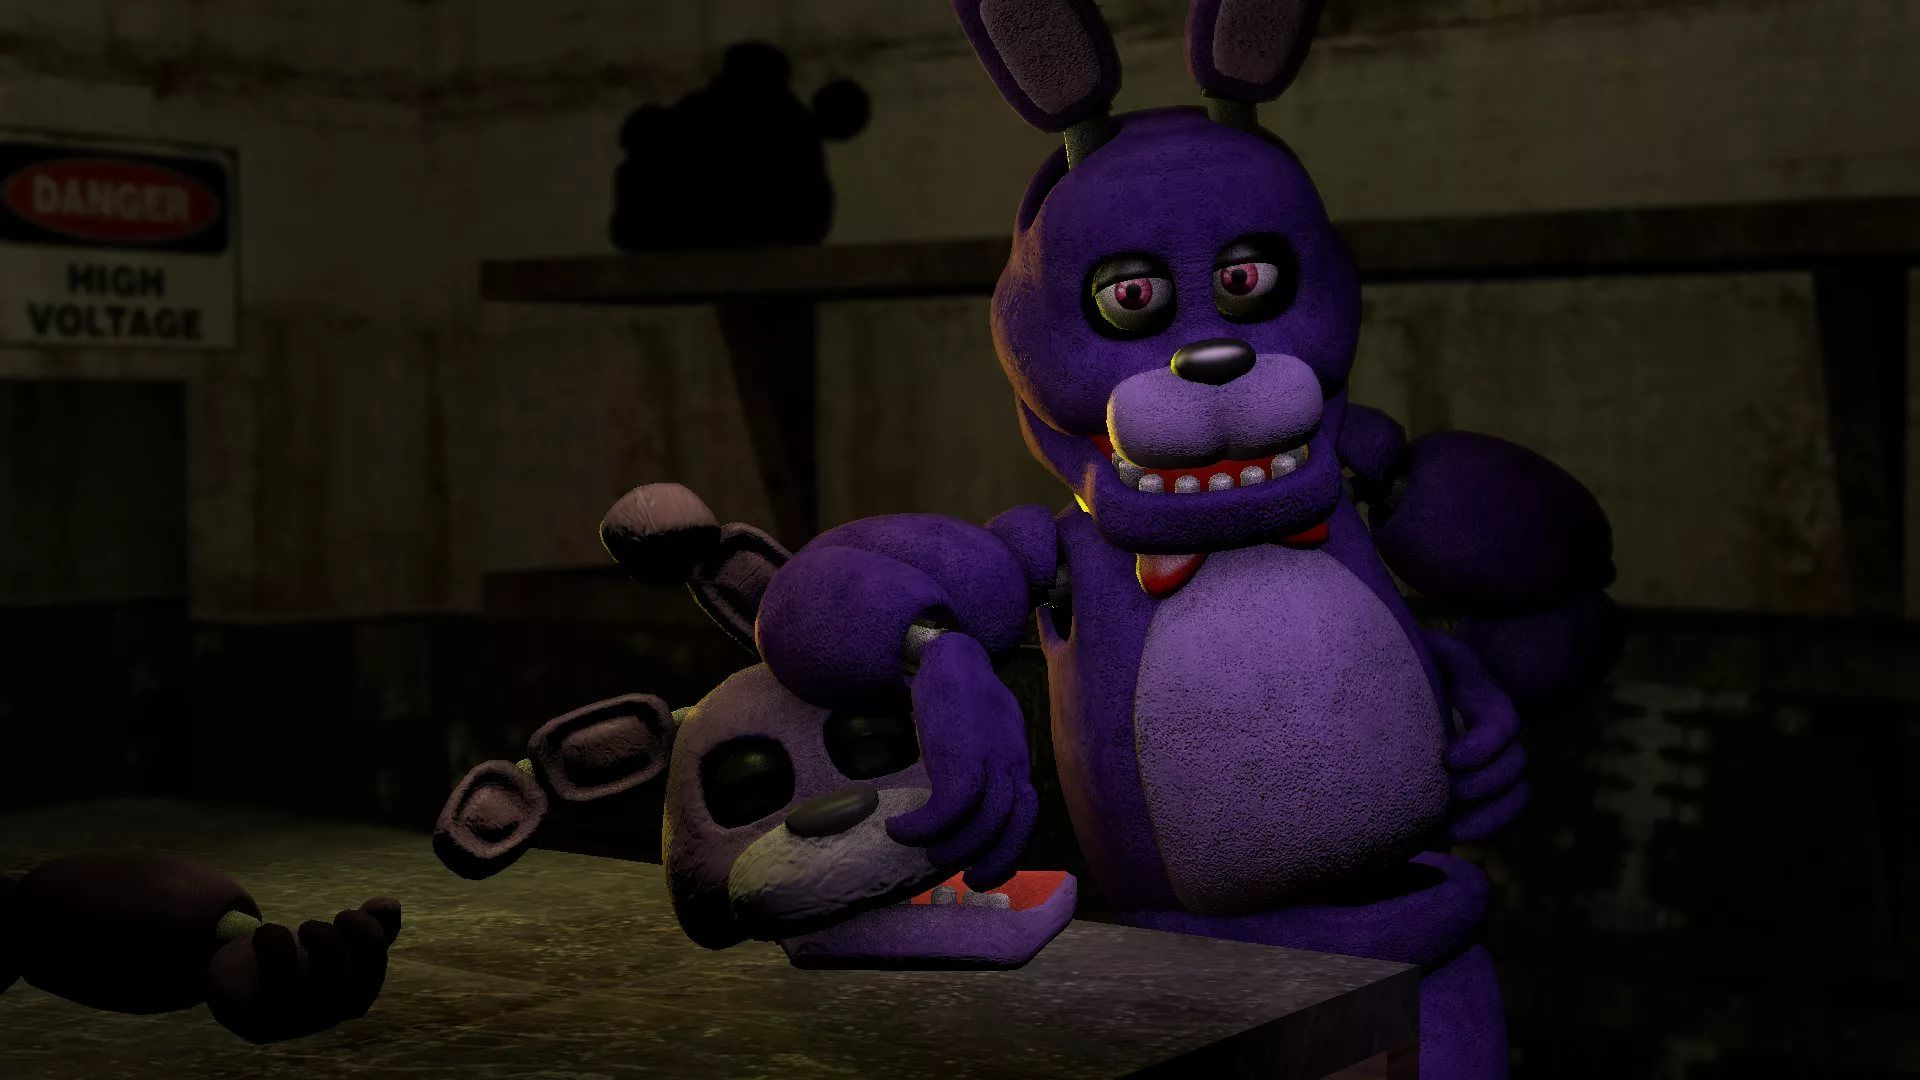 FNAF Bonnie full screen hd wallpaper